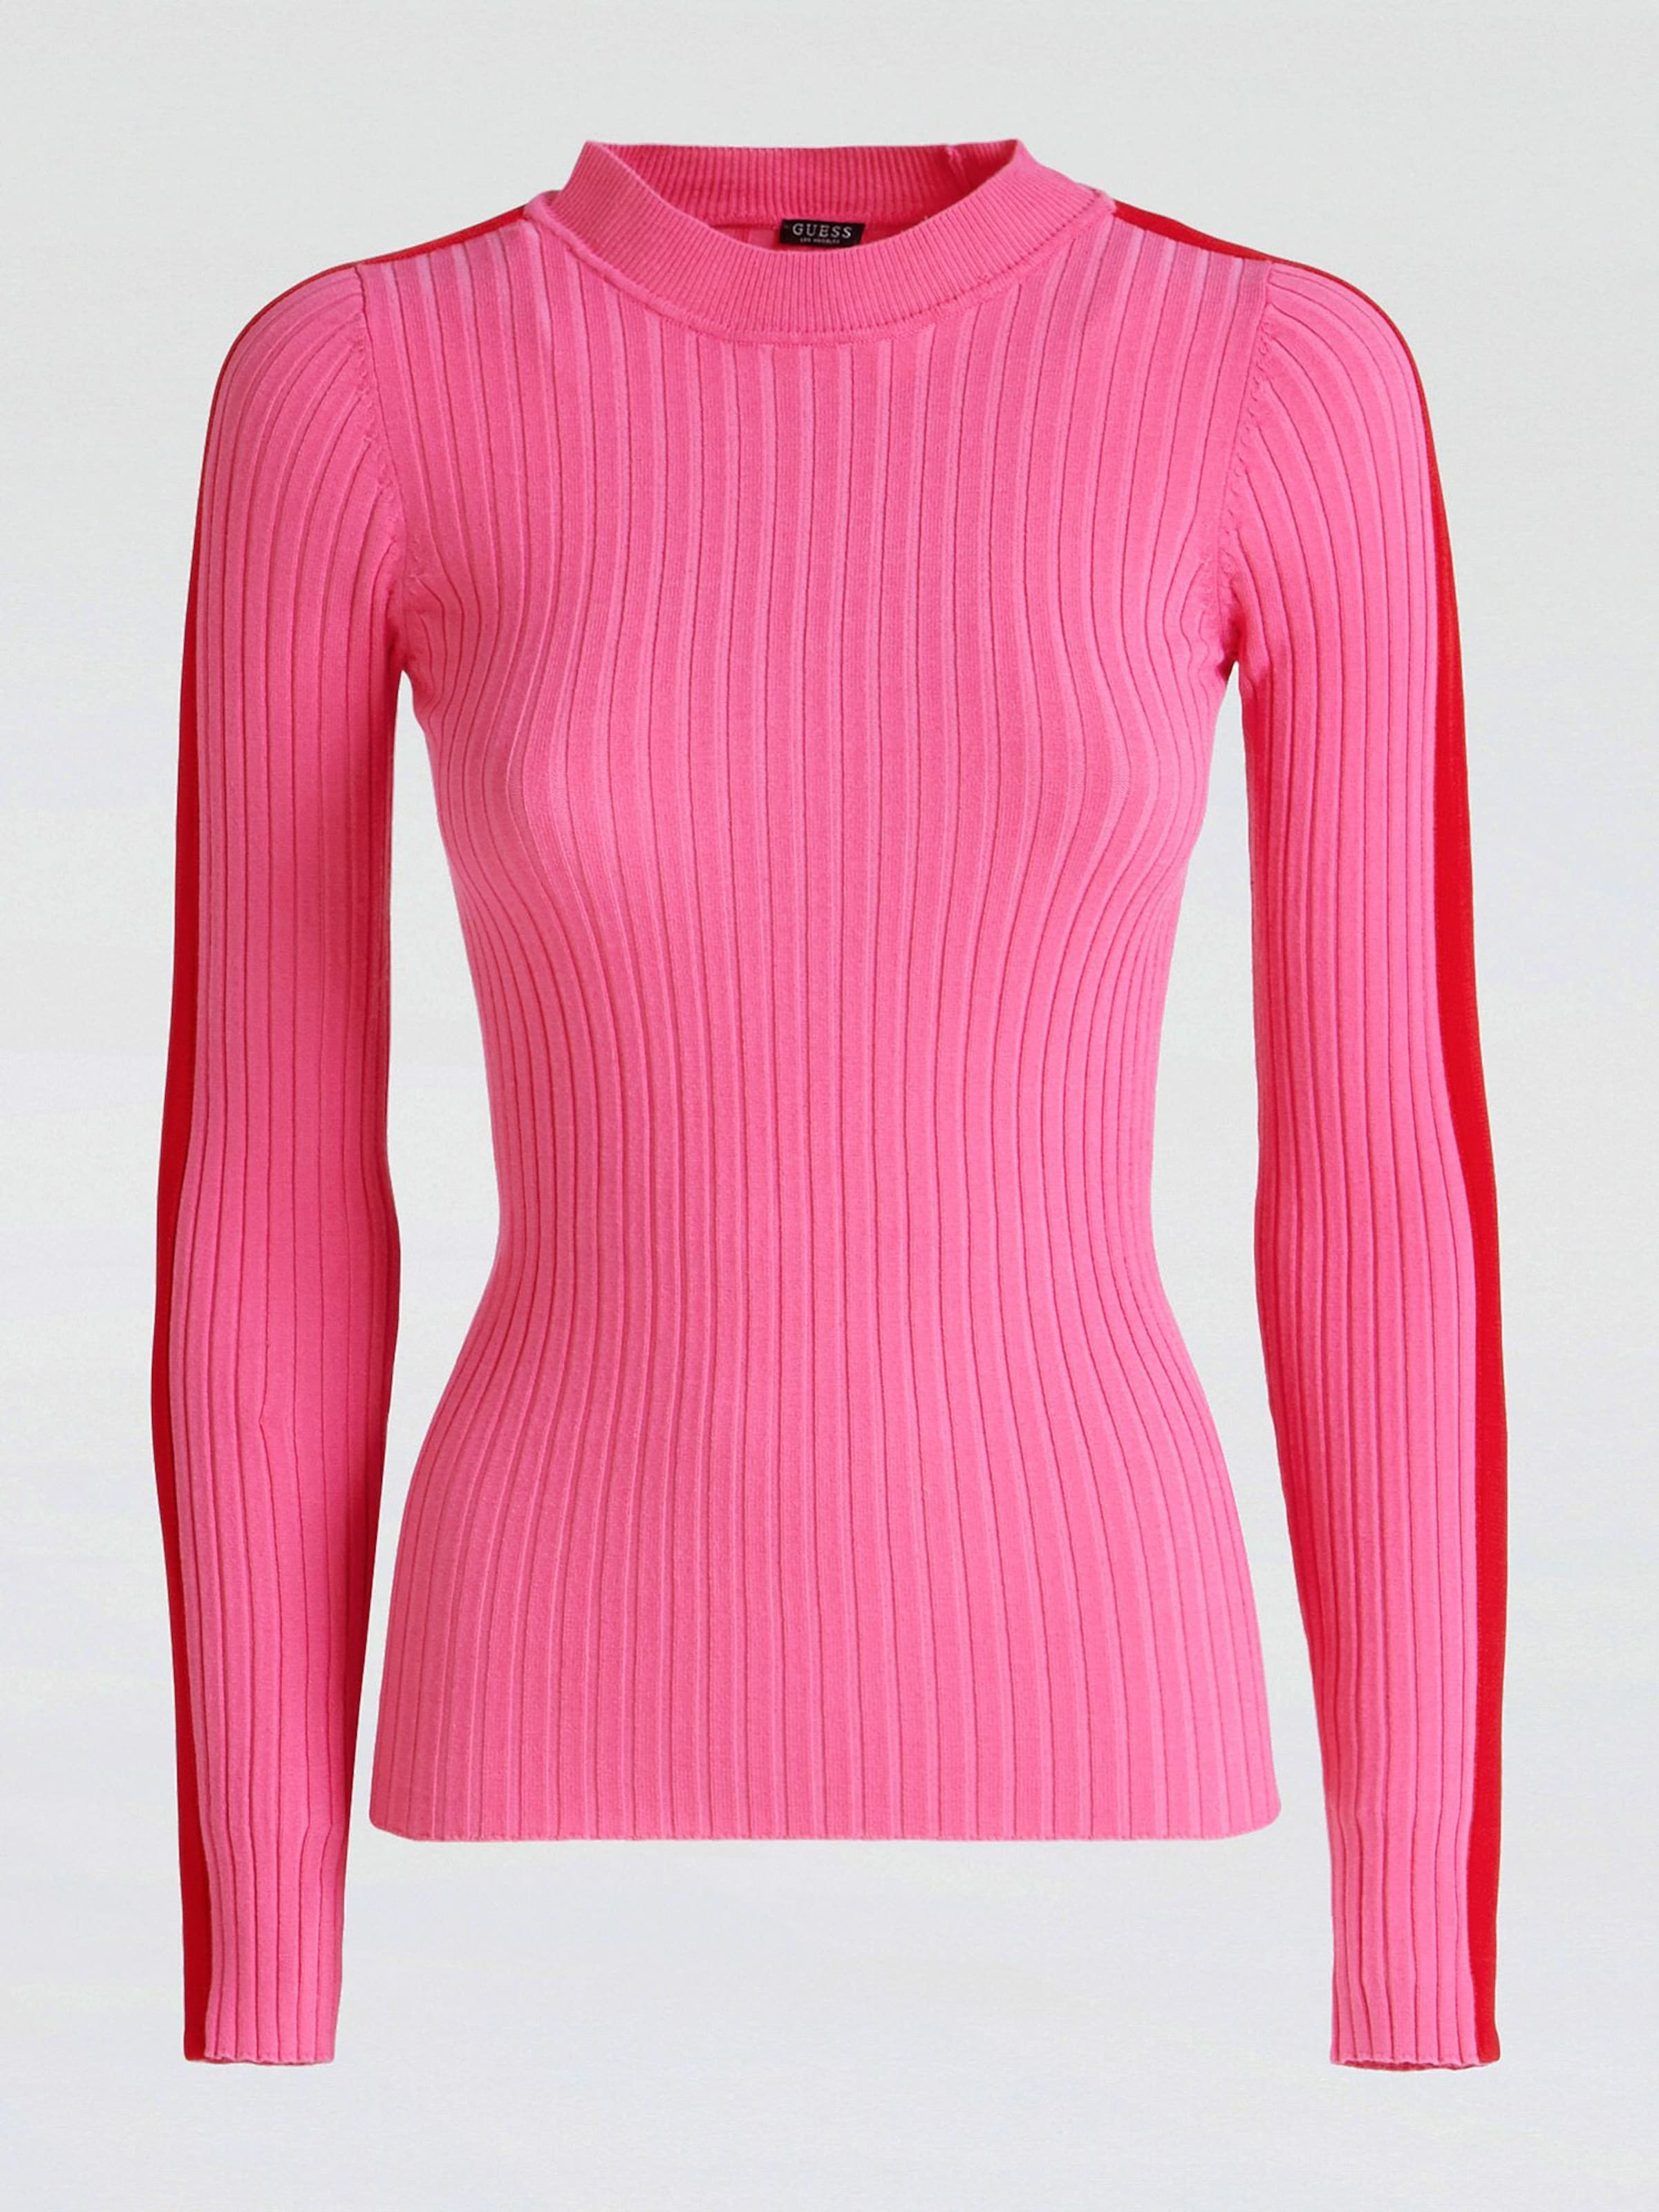 In In PinkRot Guess Pullover Guess PinkRot Guess Pullover In PinkRot Guess Pullover 8OmNwnv0